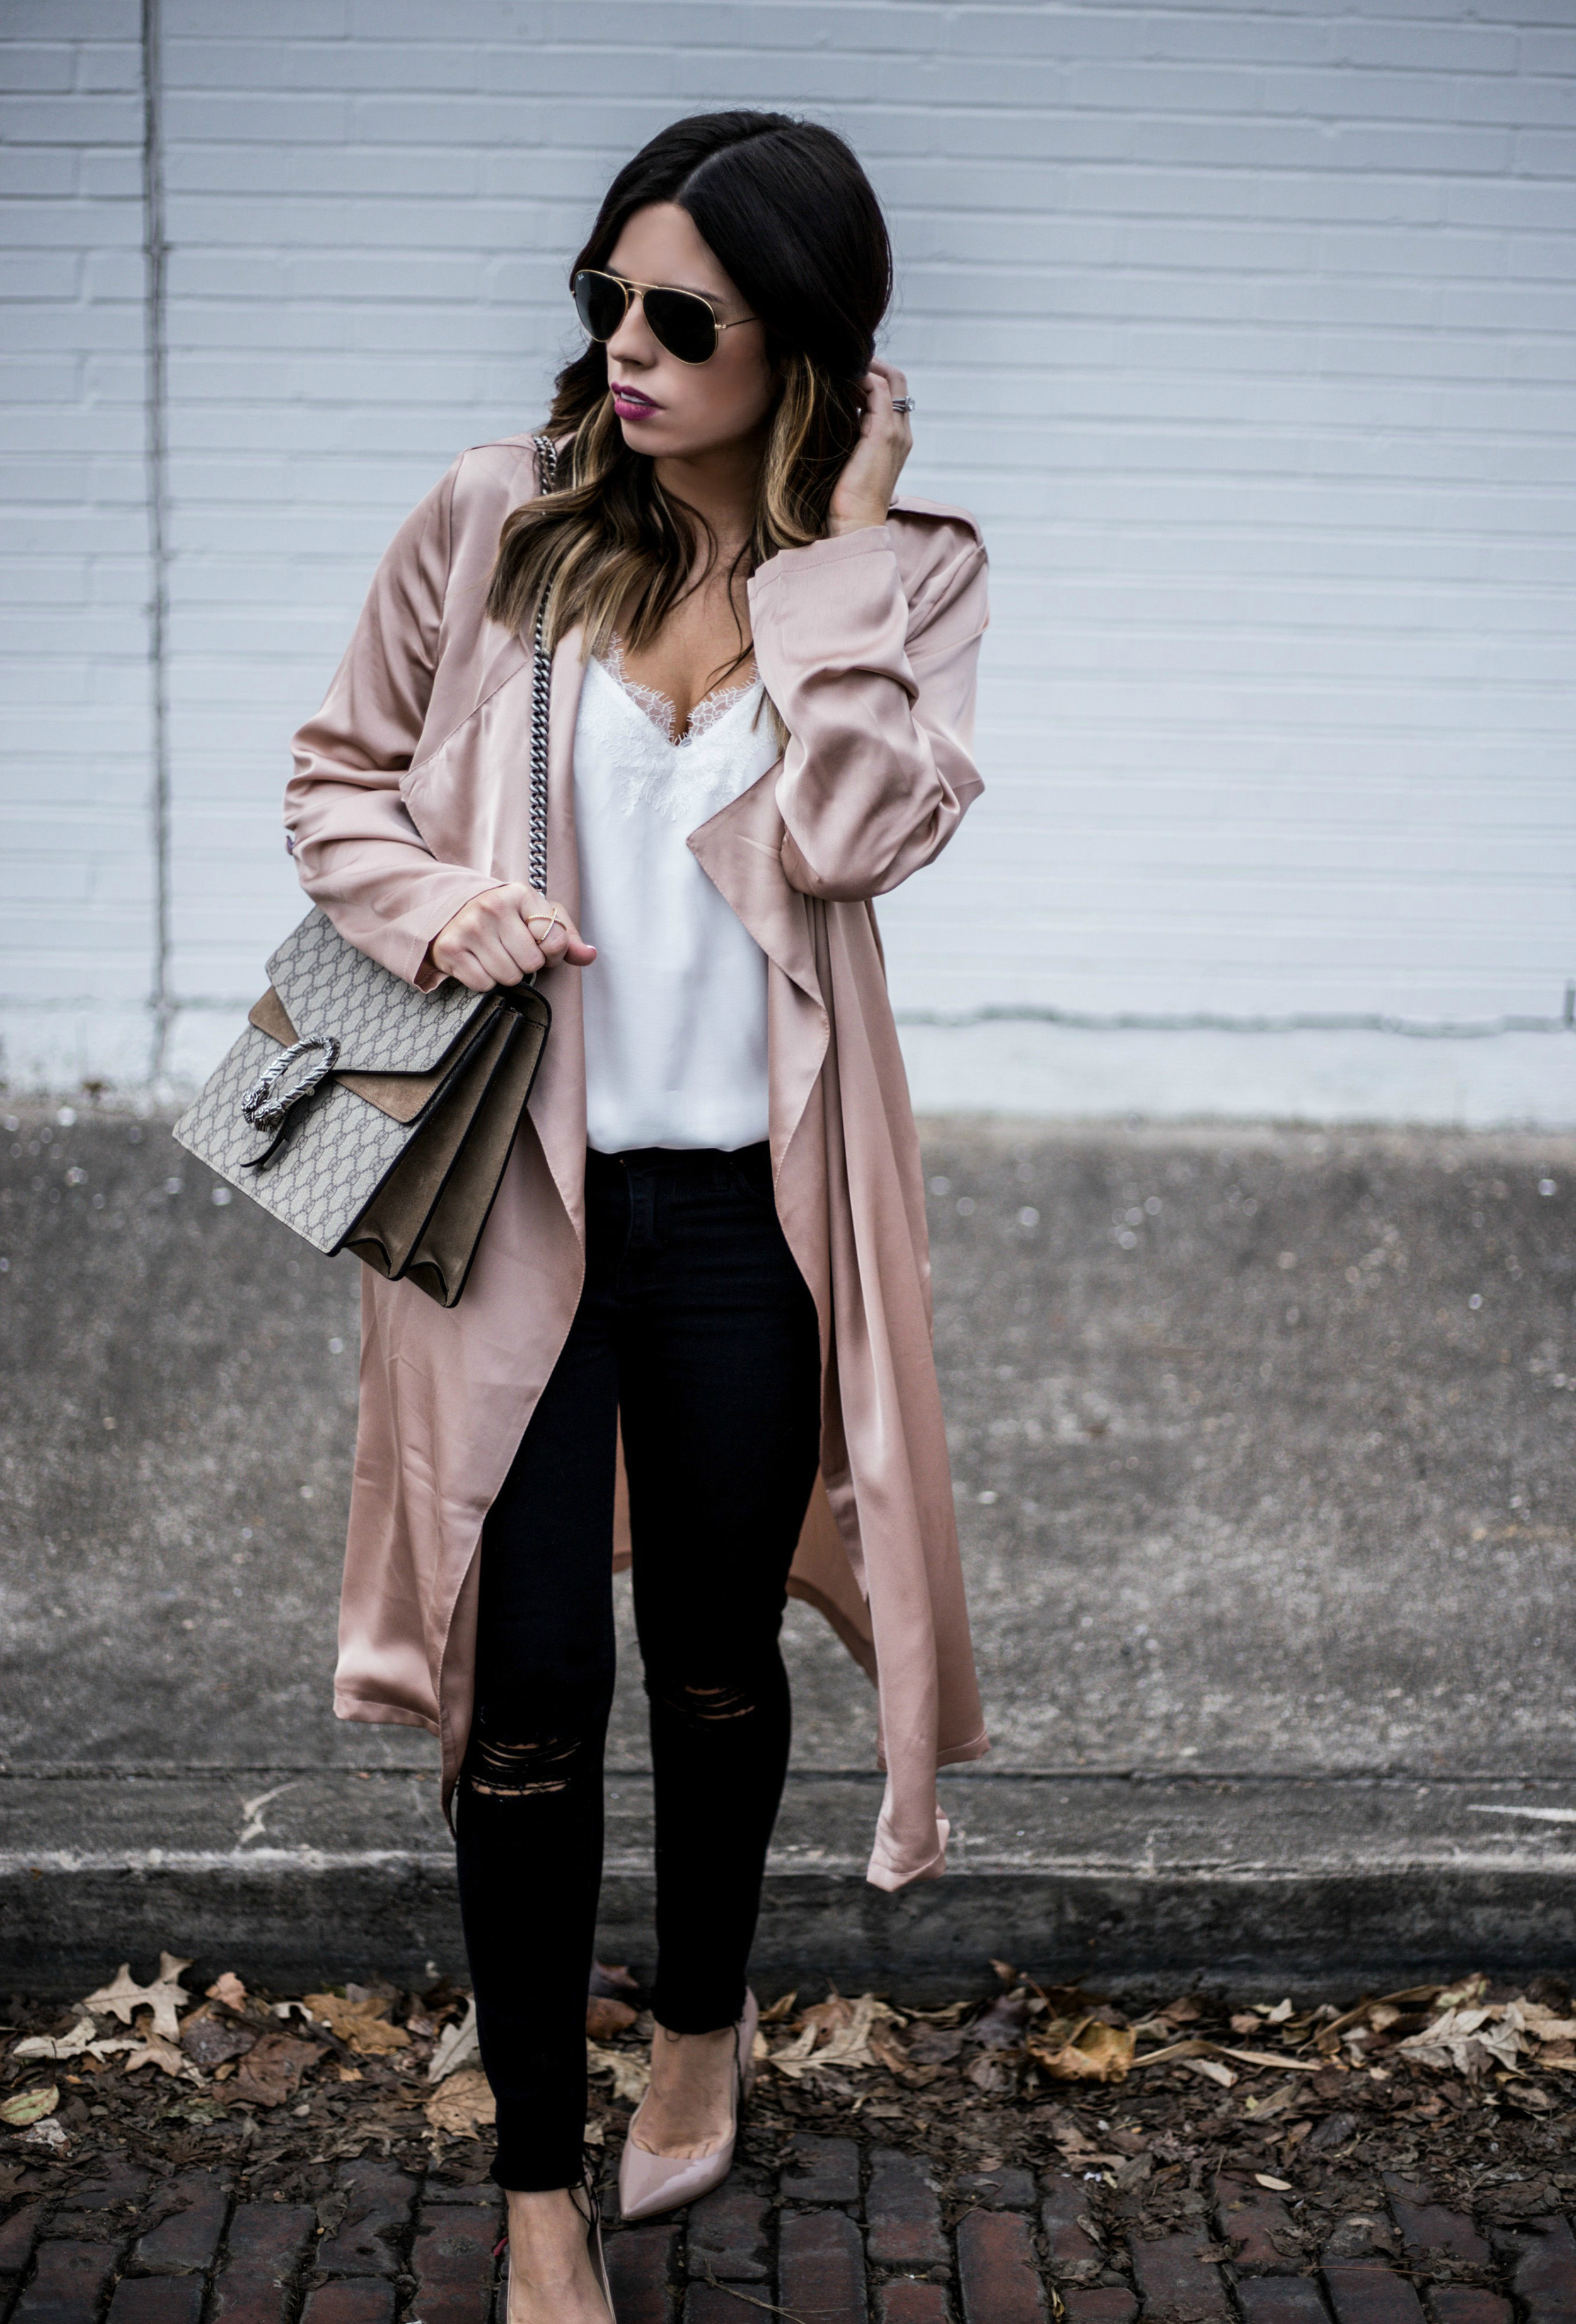 Satin blush duster paired with black distressed skinny jeans | what's currently trending in women's fashion 2016